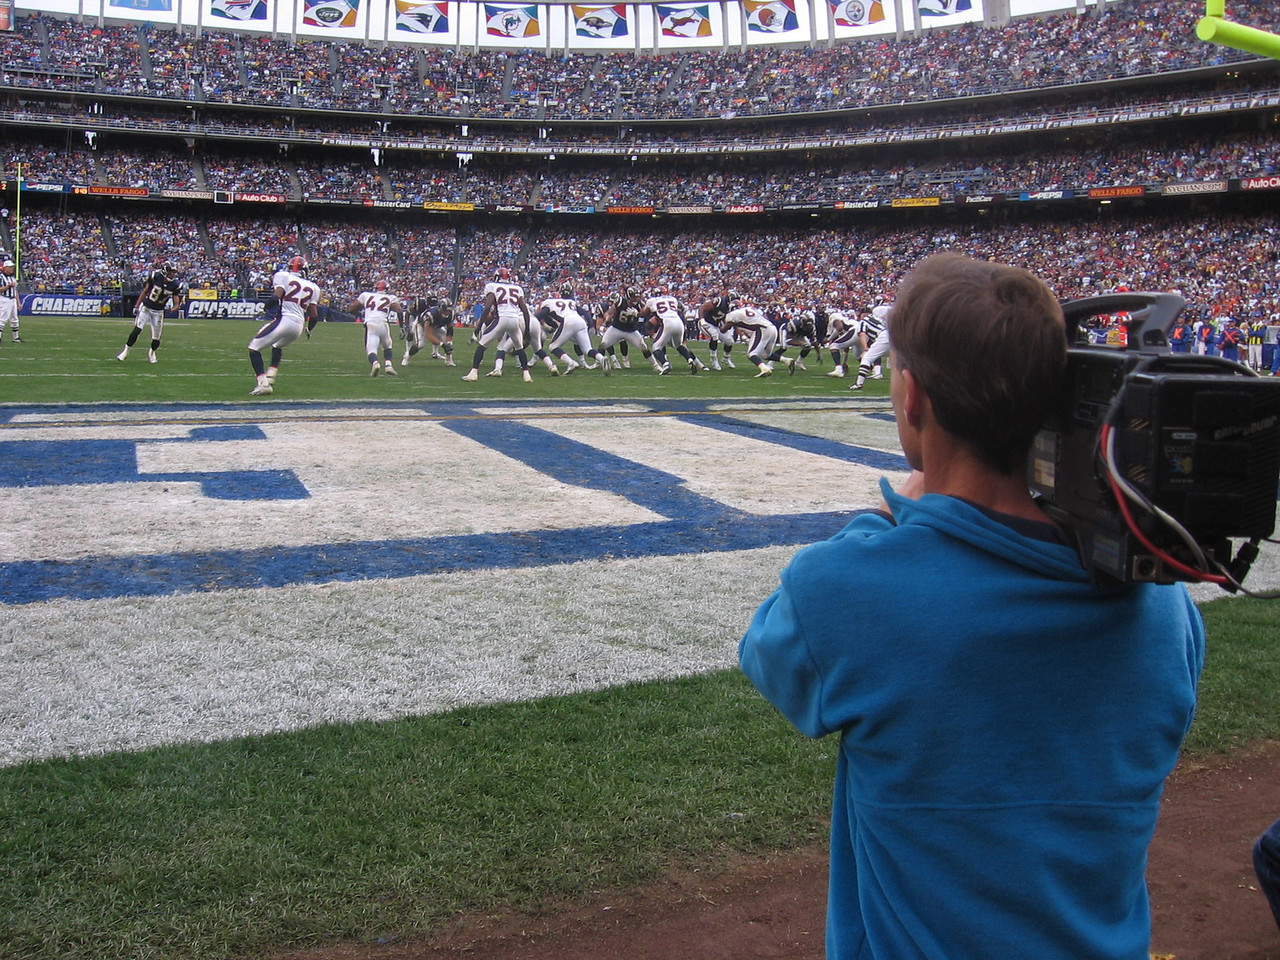 Another packed house at Qualcomm for a big game.